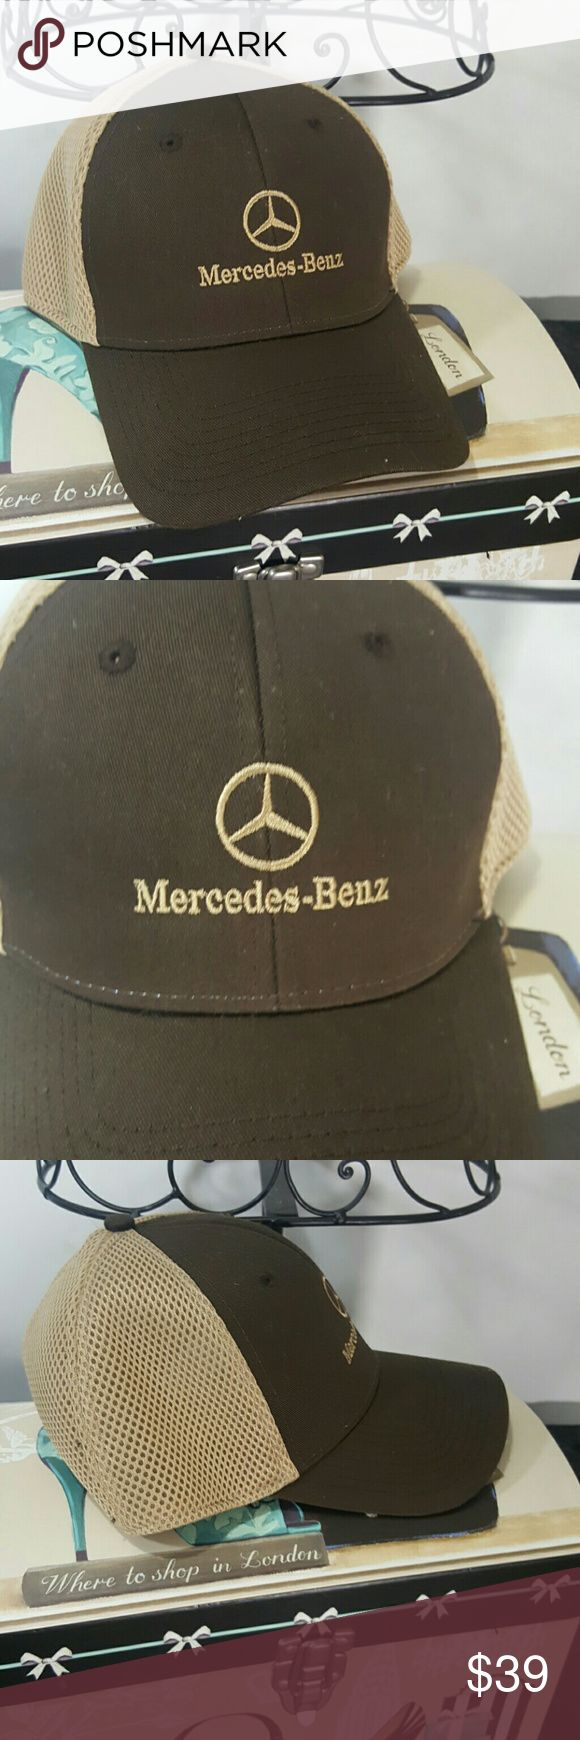 Nwot brown and tan Mercedes Benz ball cap Never got a chance to wear it,I only tried on at the dealership New Era Accessories Hats